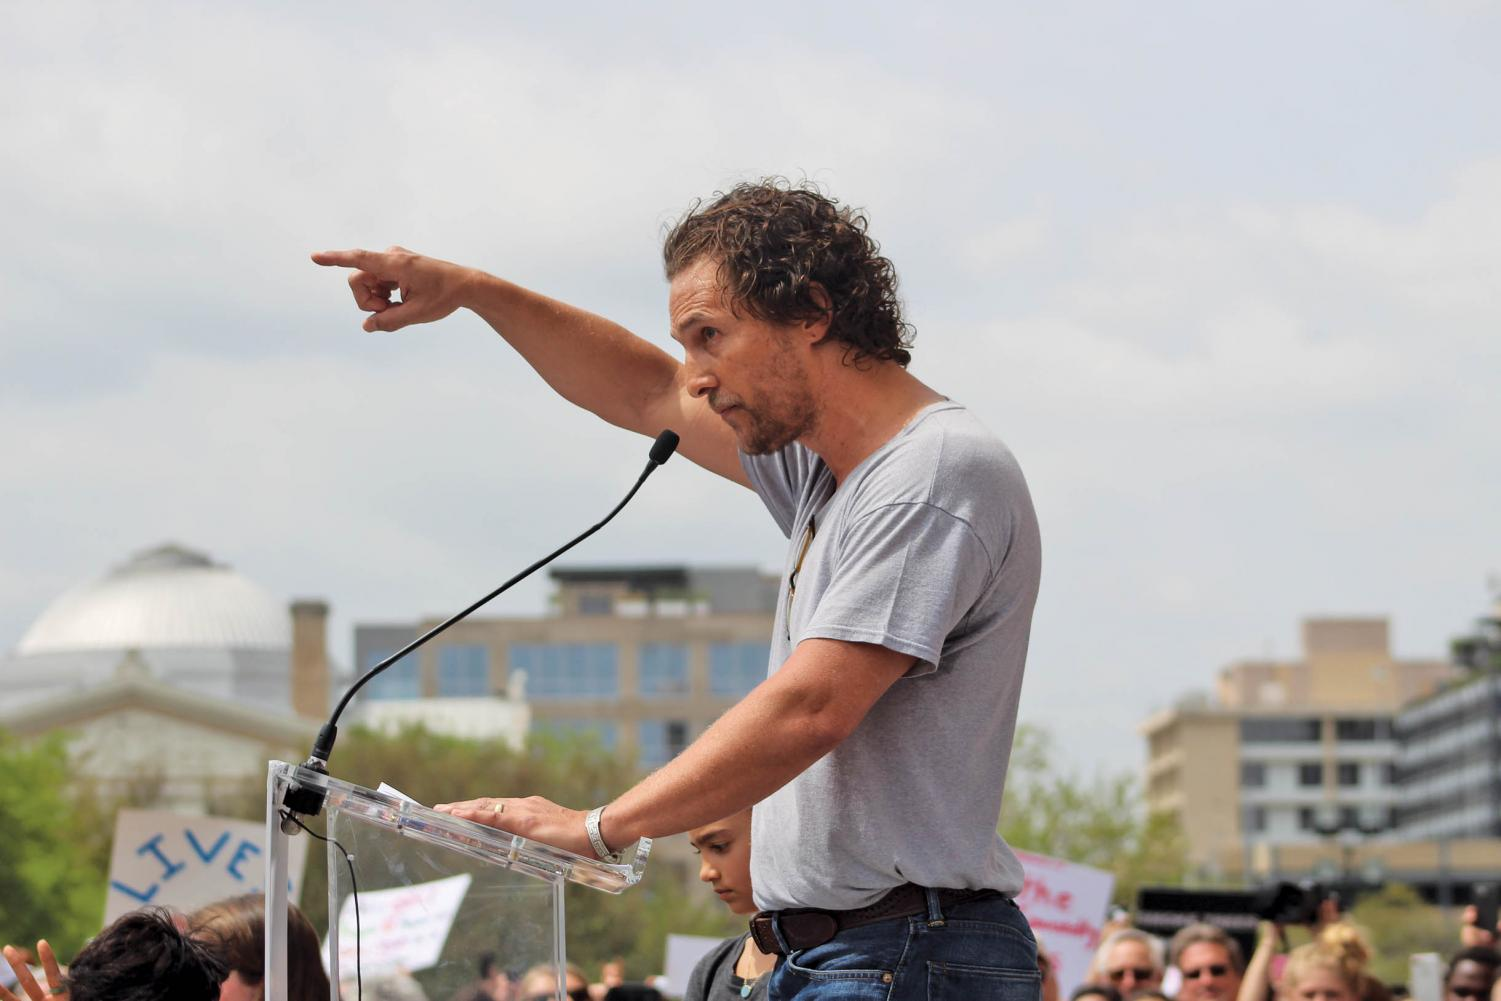 Matthew McConaughey is no stranger to public protest. He was a big part of 2018's March For Our Life, where he advocated for common sense gun legislation.